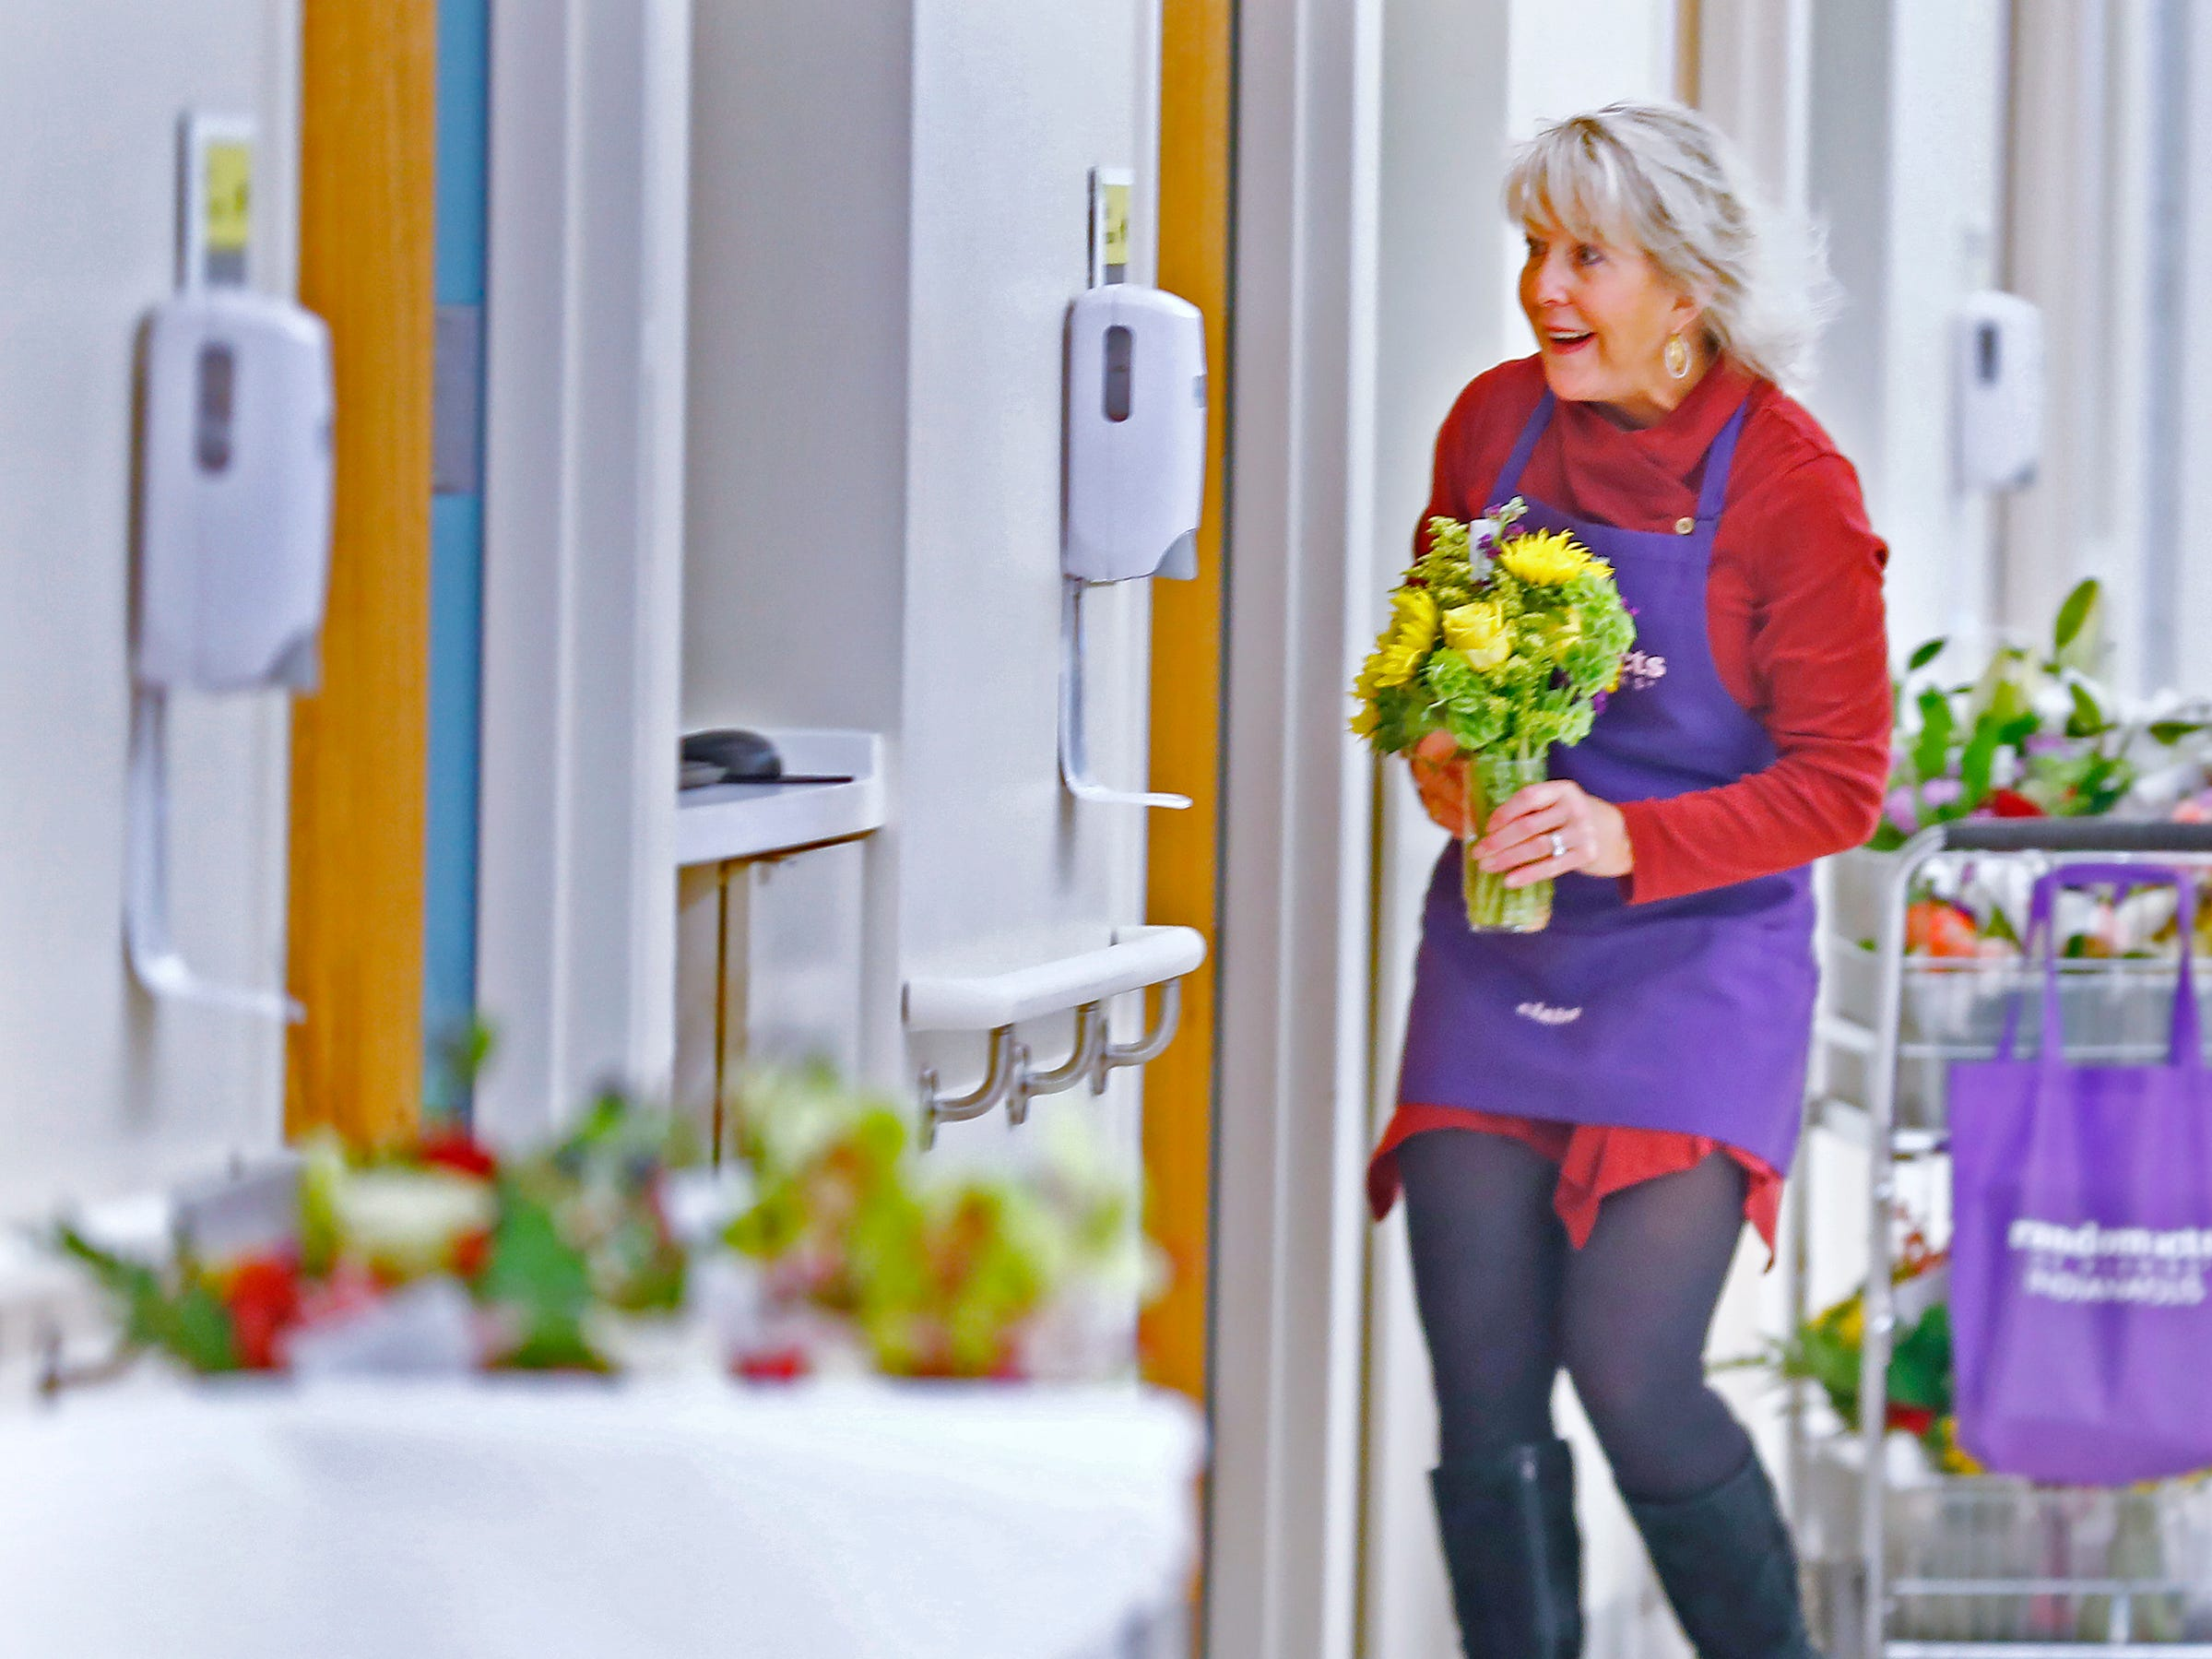 Claire Alexander, with Random Acts of Flowers, gets ready to deliver flowers to a patient, at Sidney & Lois Eskenazi Hospital, Thursday, Nov. 29, 2018.  The newest branch of the national floral nonprofit has been delivering the flowers to patients to offer hope, encouragement and smiles, for about two years.  This day, Random Acts of Flowers delivered their 50,000th bouquet.